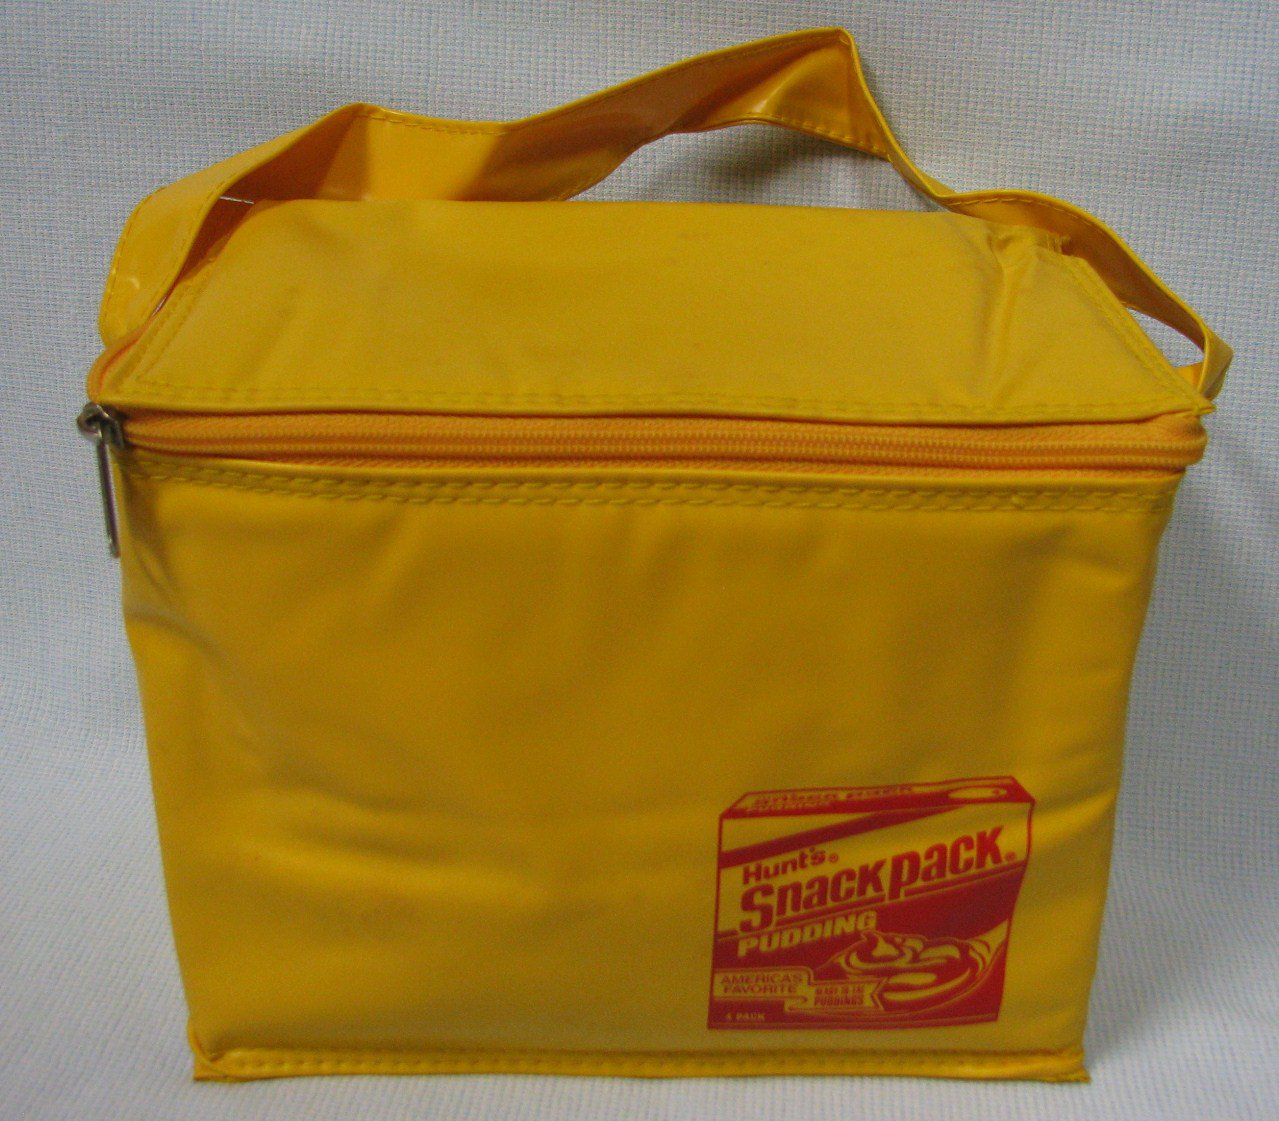 Hunts Snackpack Pudding Vinyl Tote Lunchbox Promo